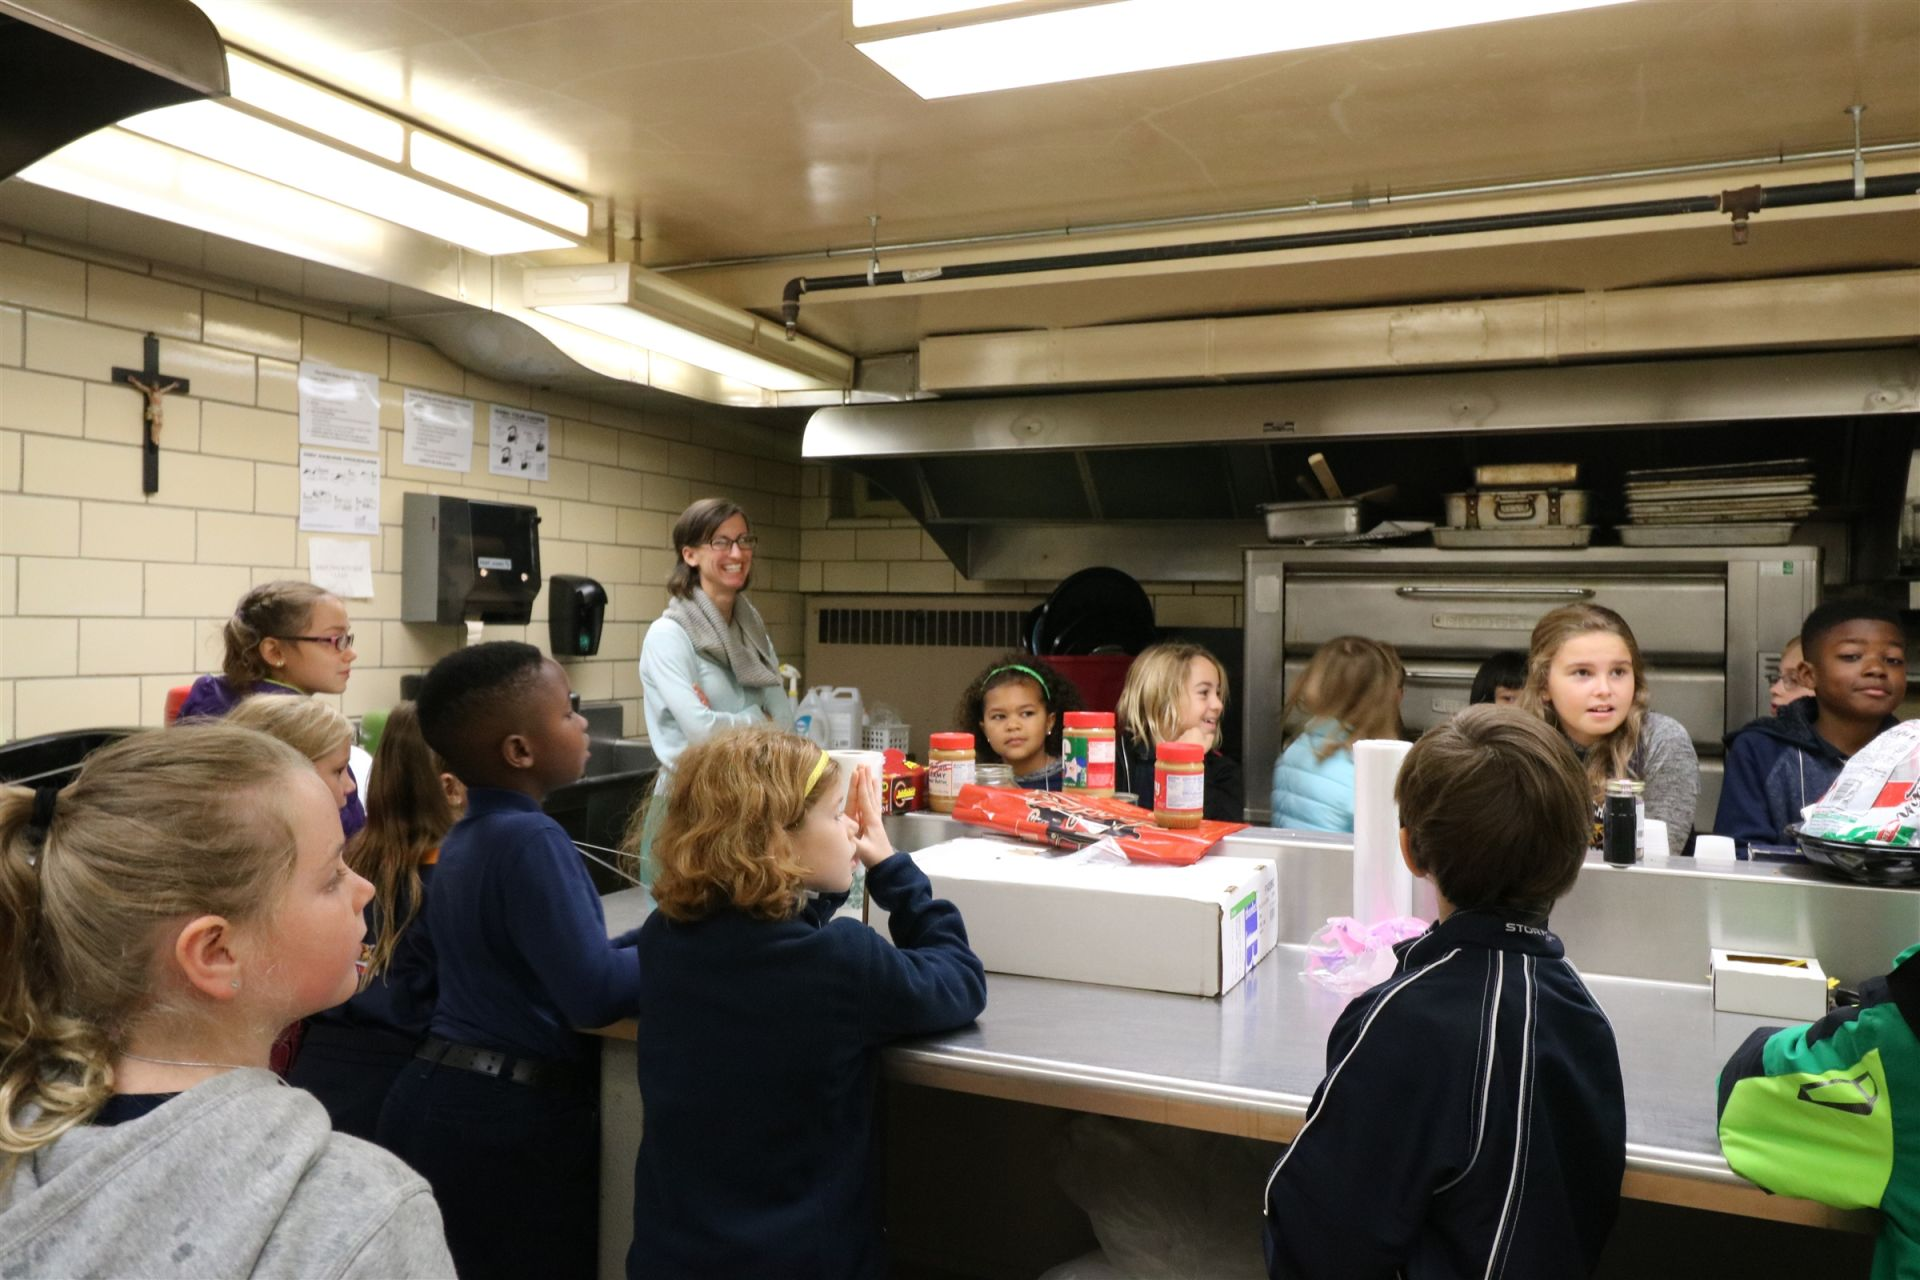 Students listen to instruction on how to fill boxes at the Riverwest Food Pantry.